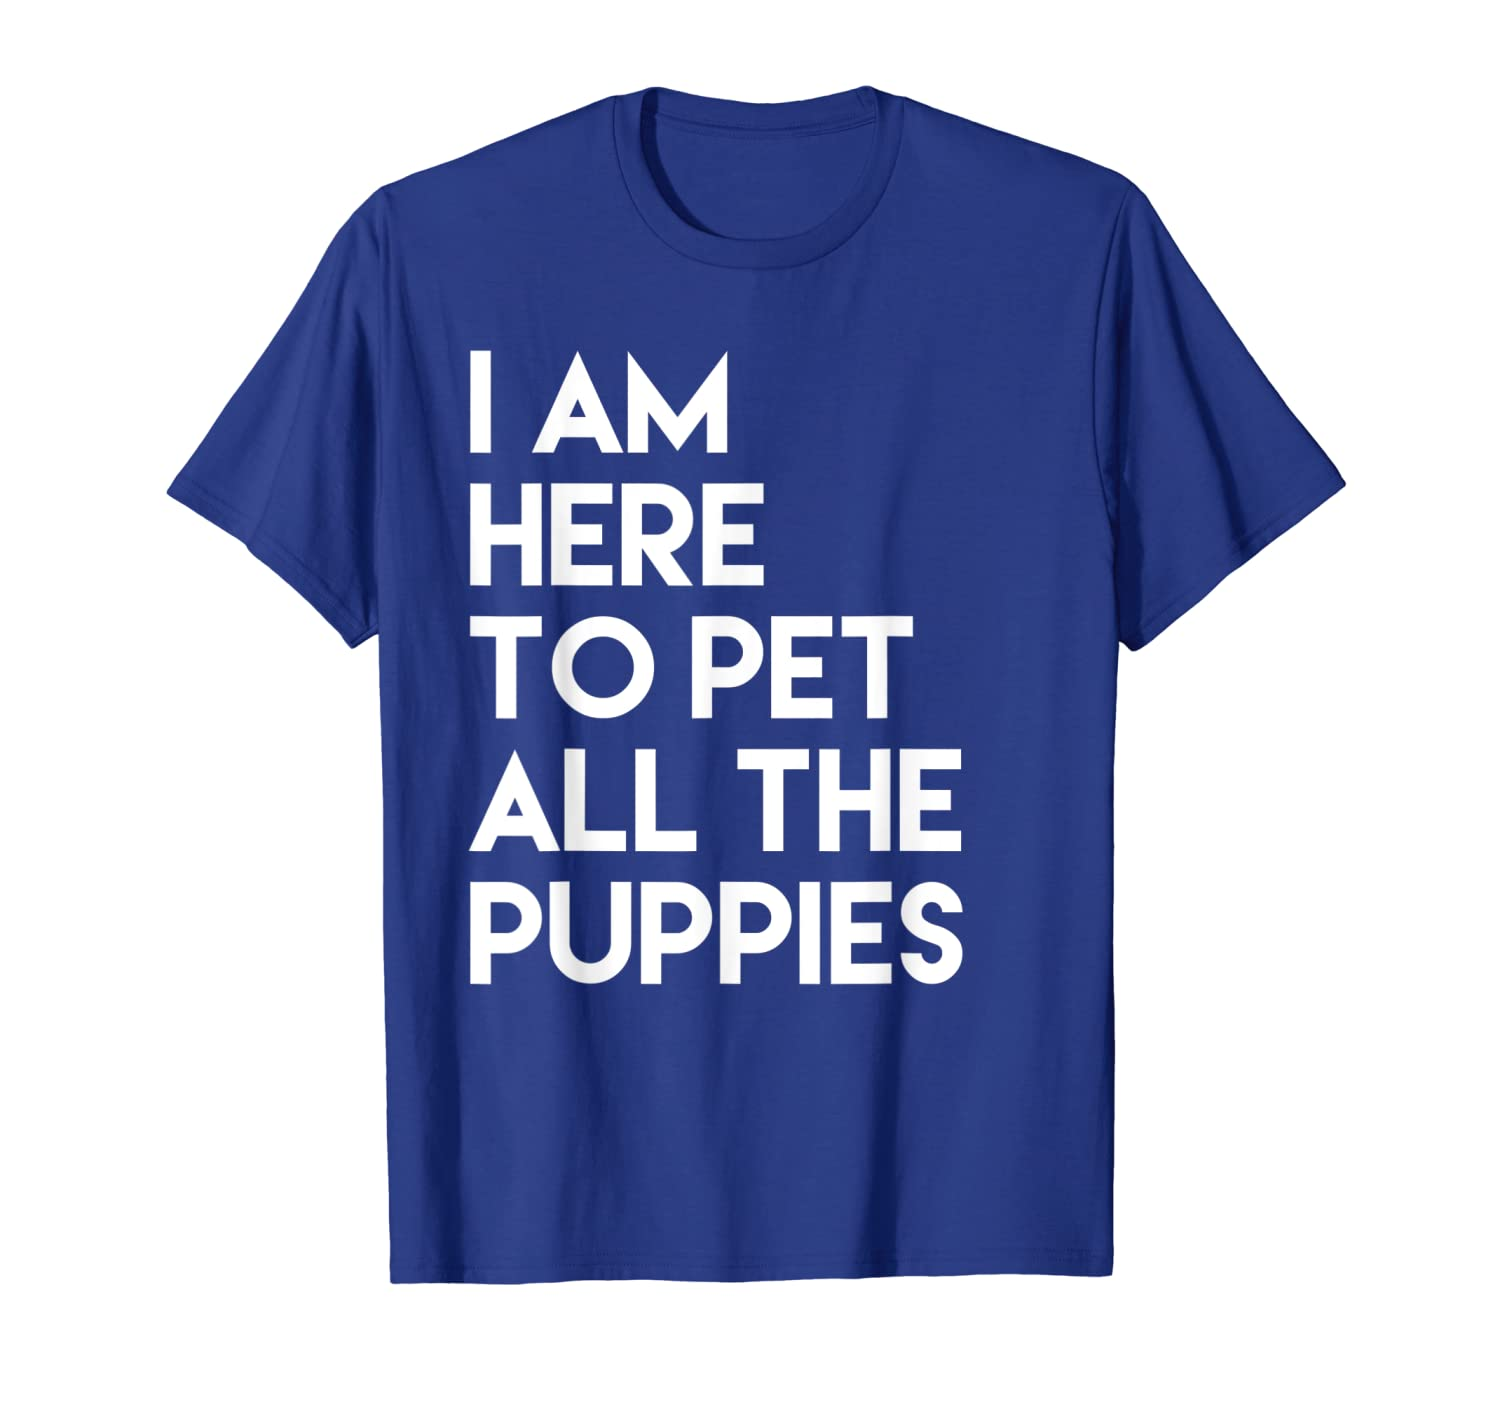 824e9ba32578 Amazon.com: I am Here to Pet All the Puppies Fun Dog Tee Shirt: Clothing